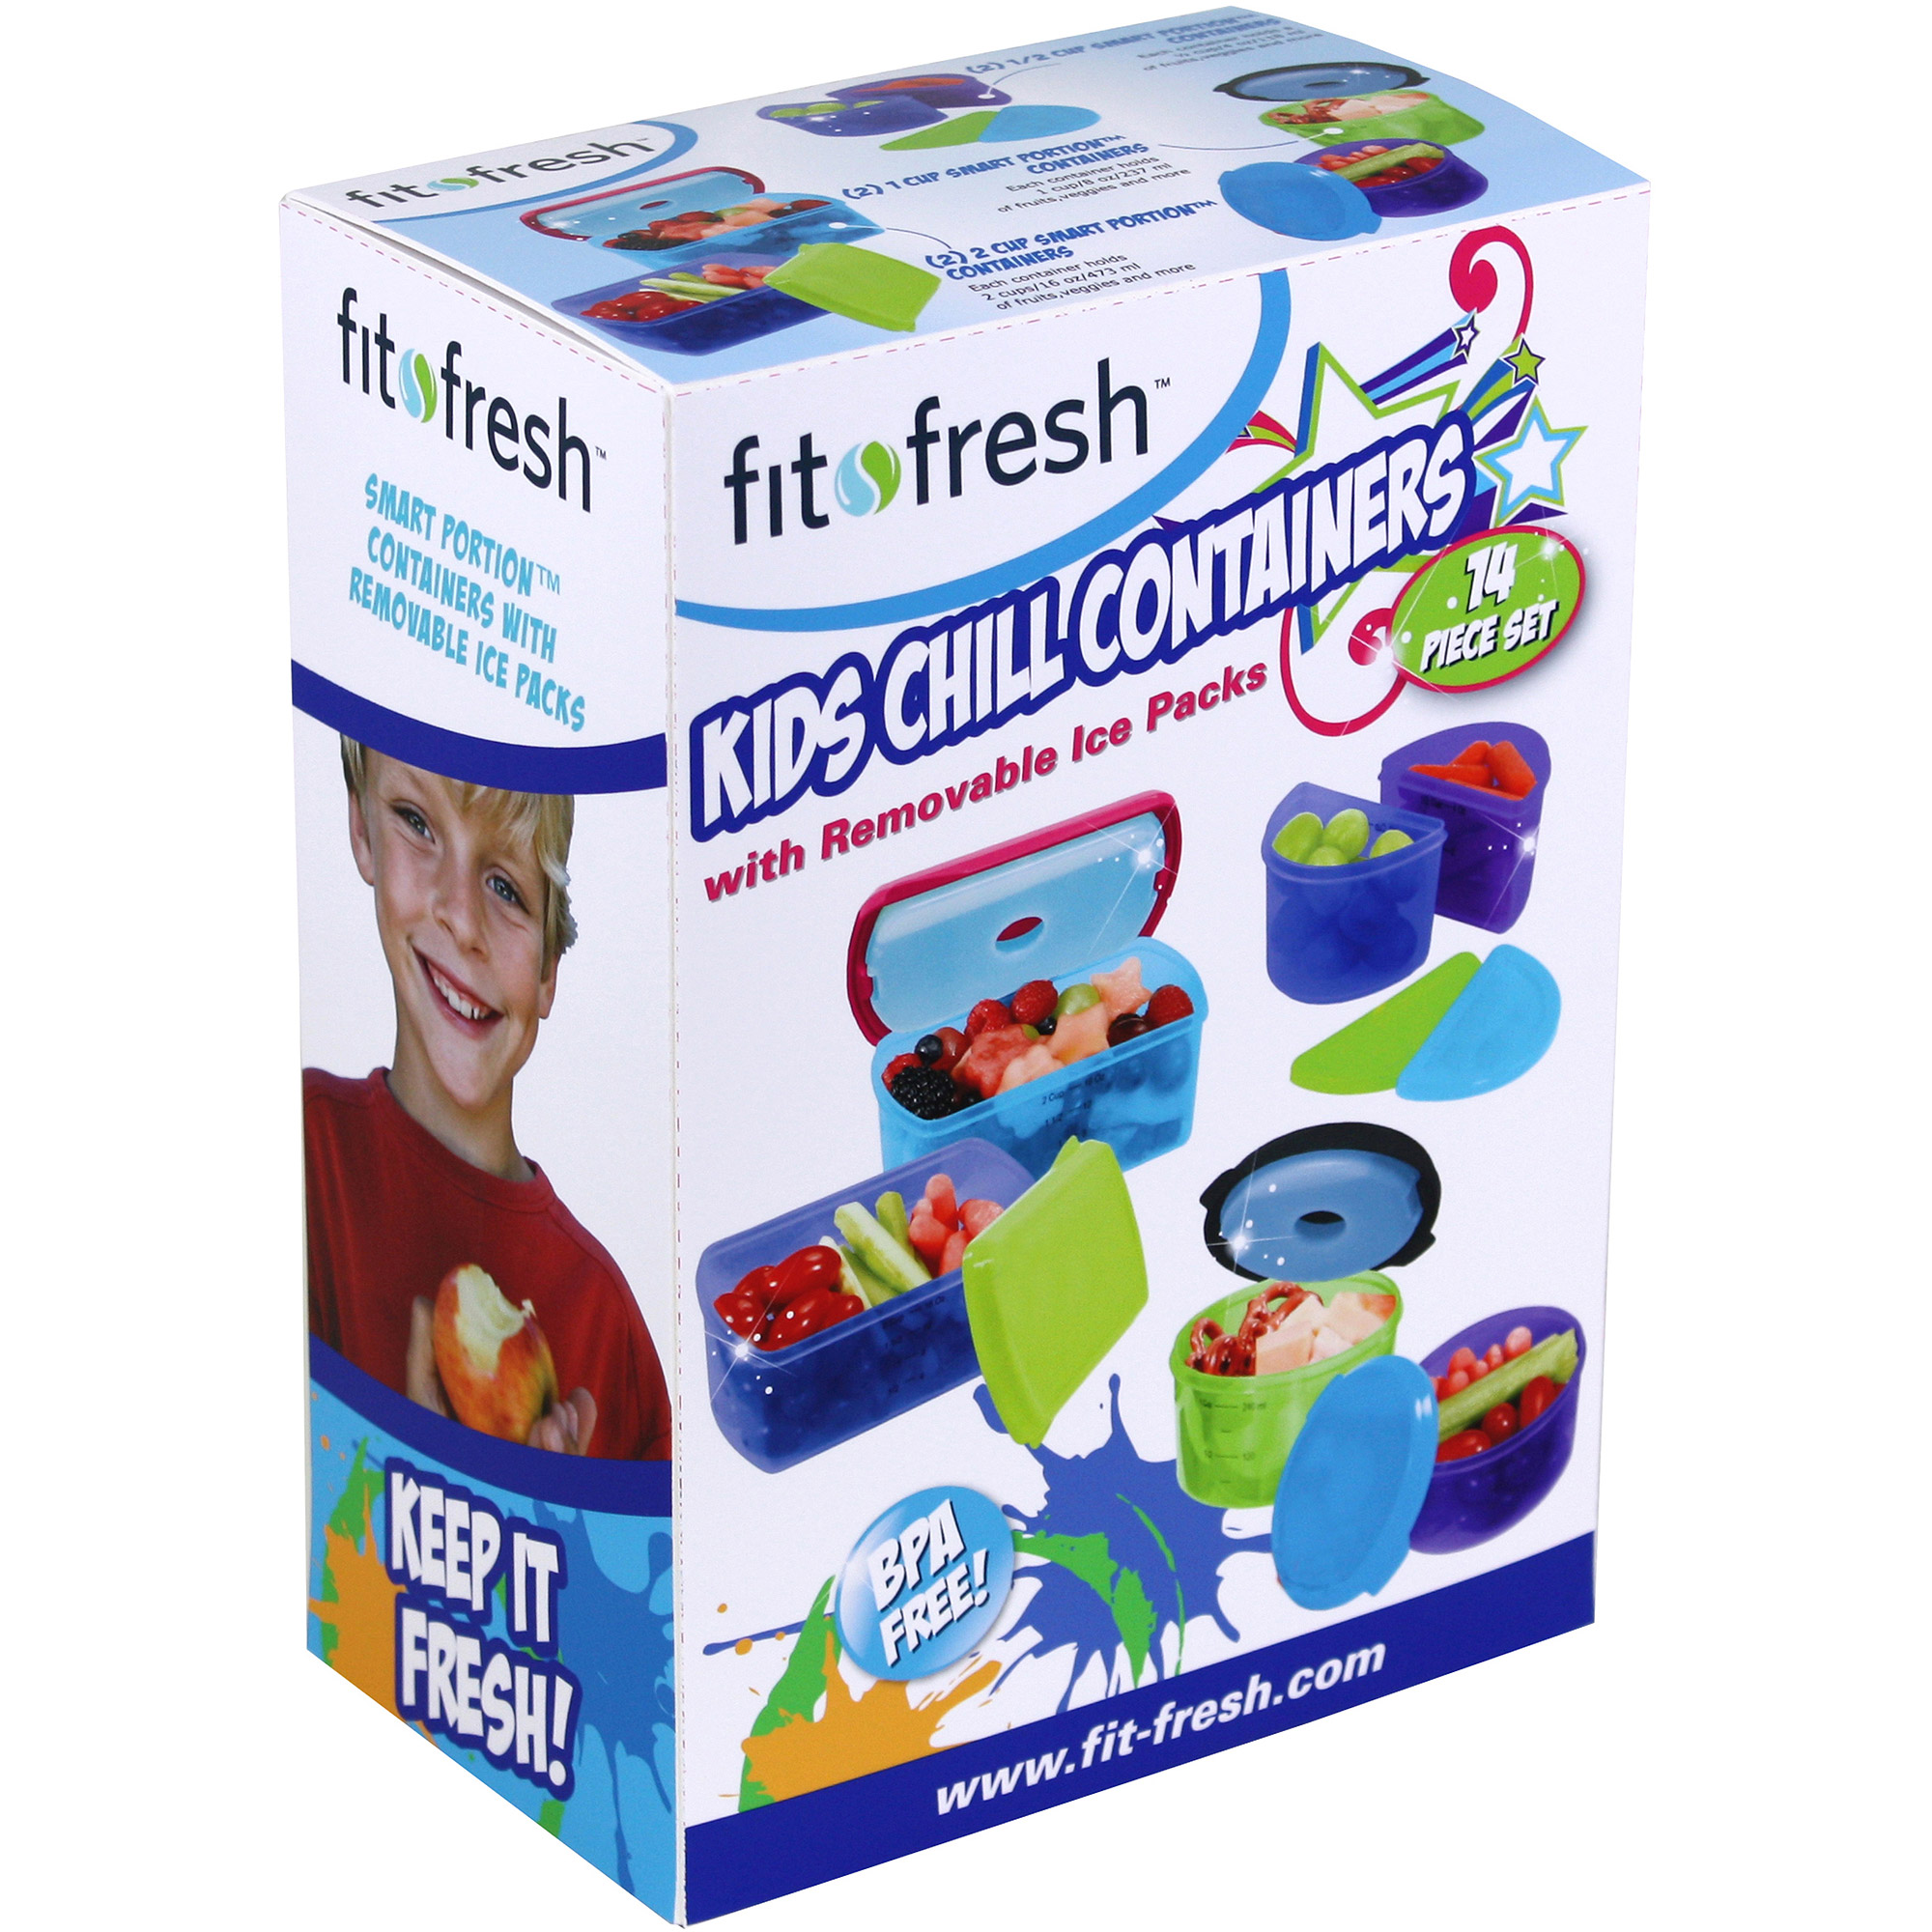 Fit & Fresh Kid's 6 Container Food Storage Set